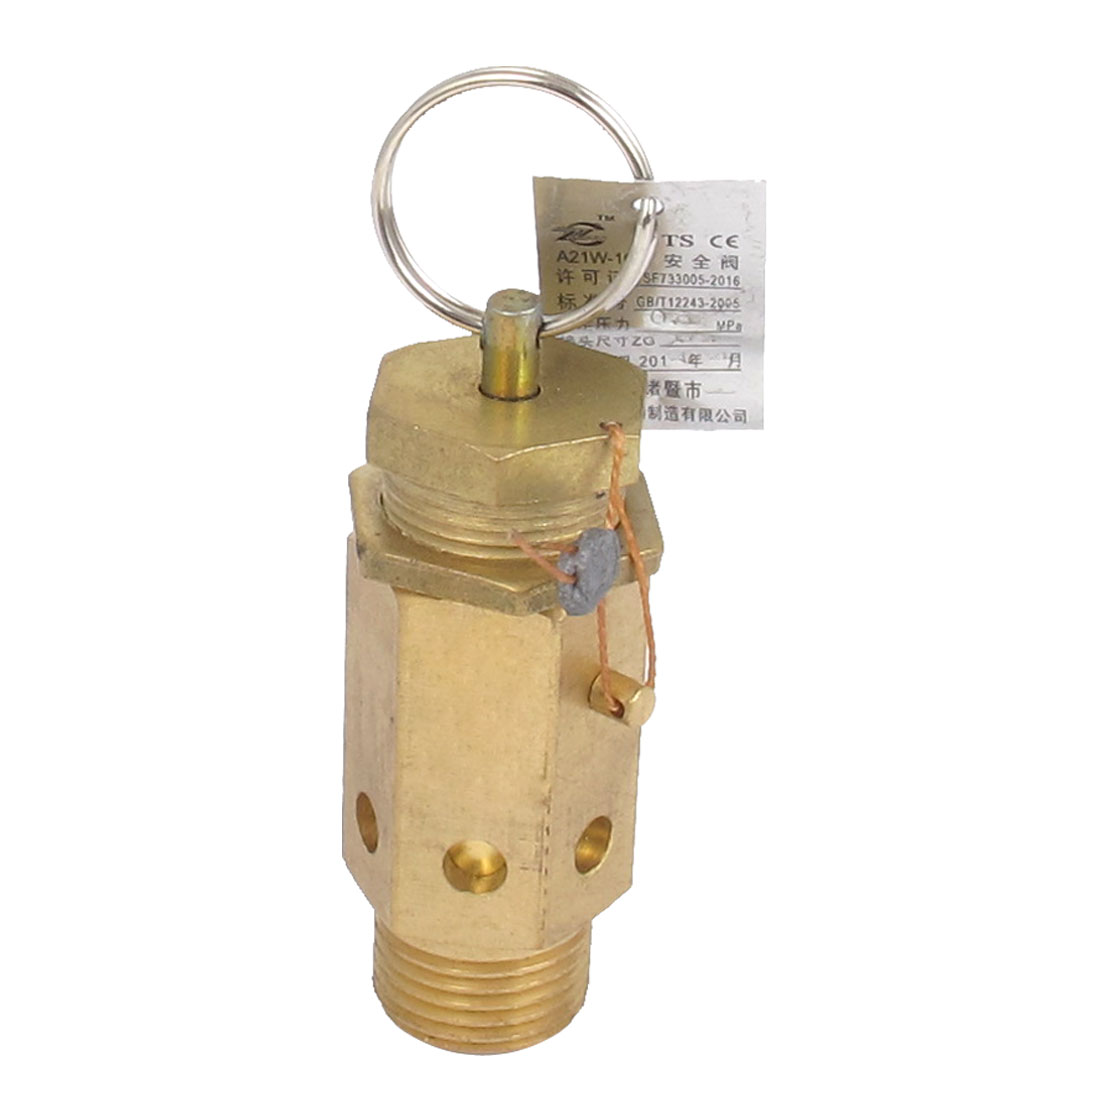 Air Compressor Pressure Relief Safety Valves Release Pneumatic Fitting 1/2BSP